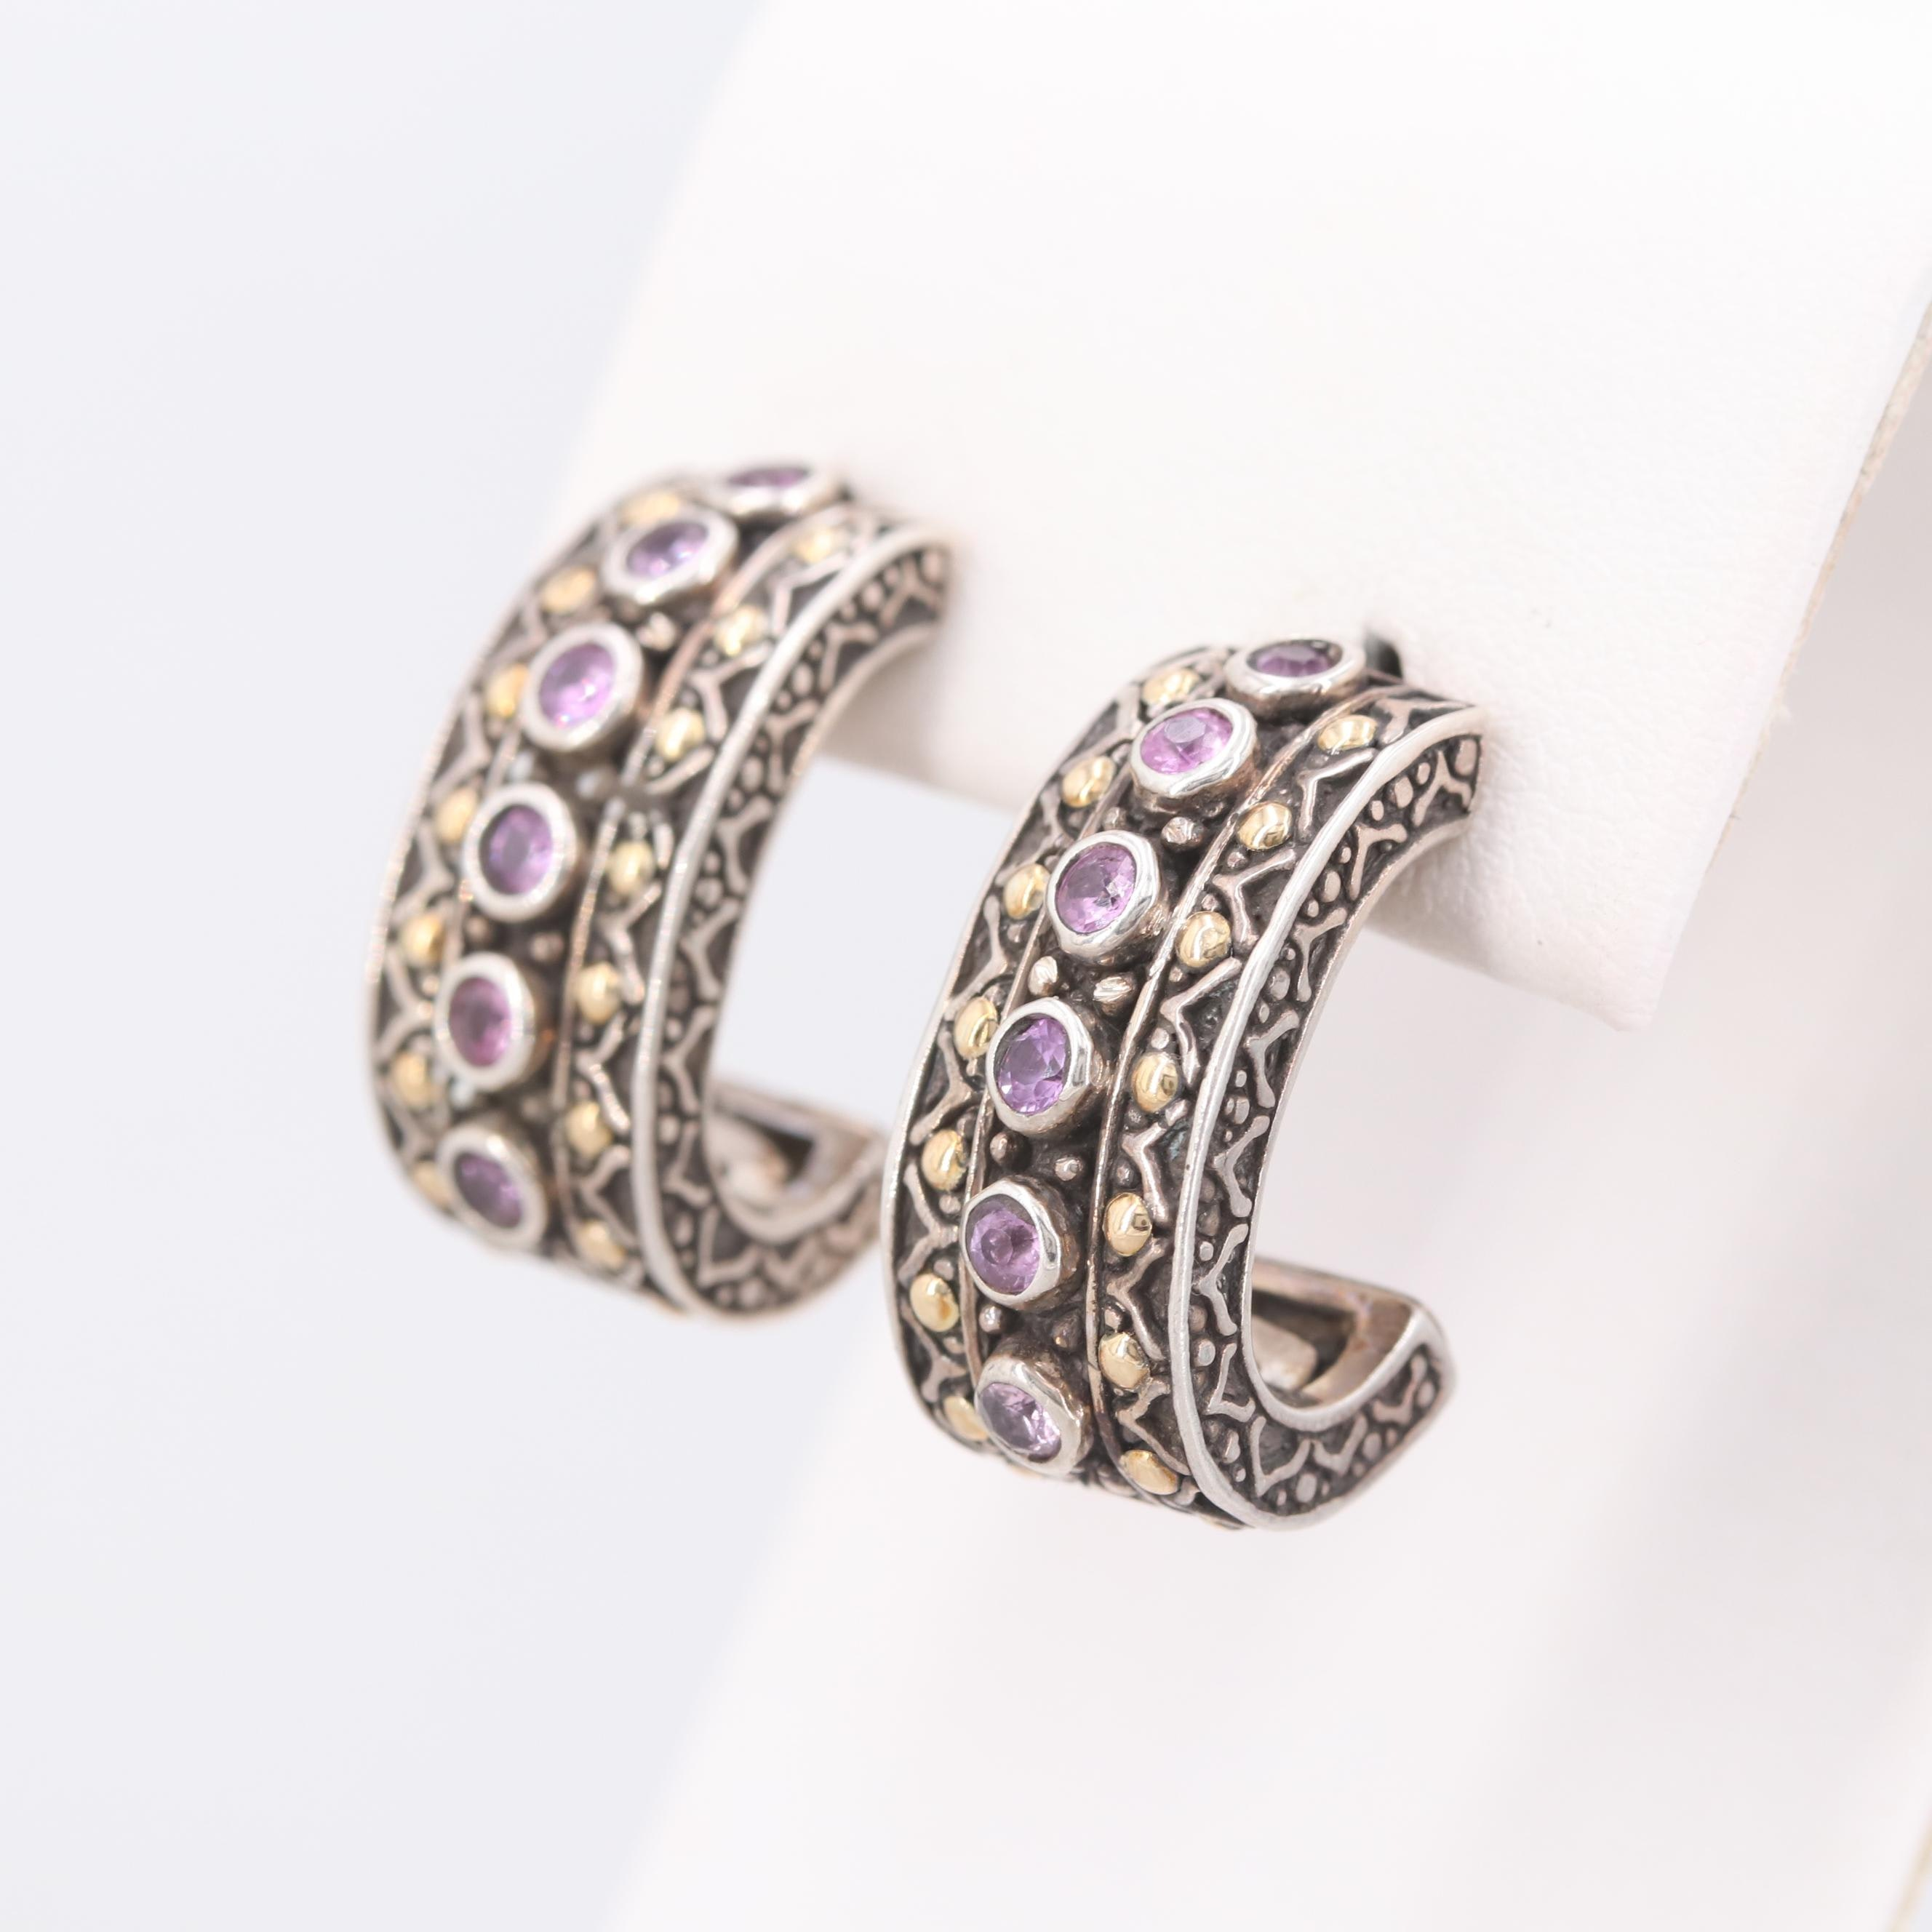 Robert Manse Sterling Silver Pink Sapphire Earrings with 18K Yellow Gold Accents